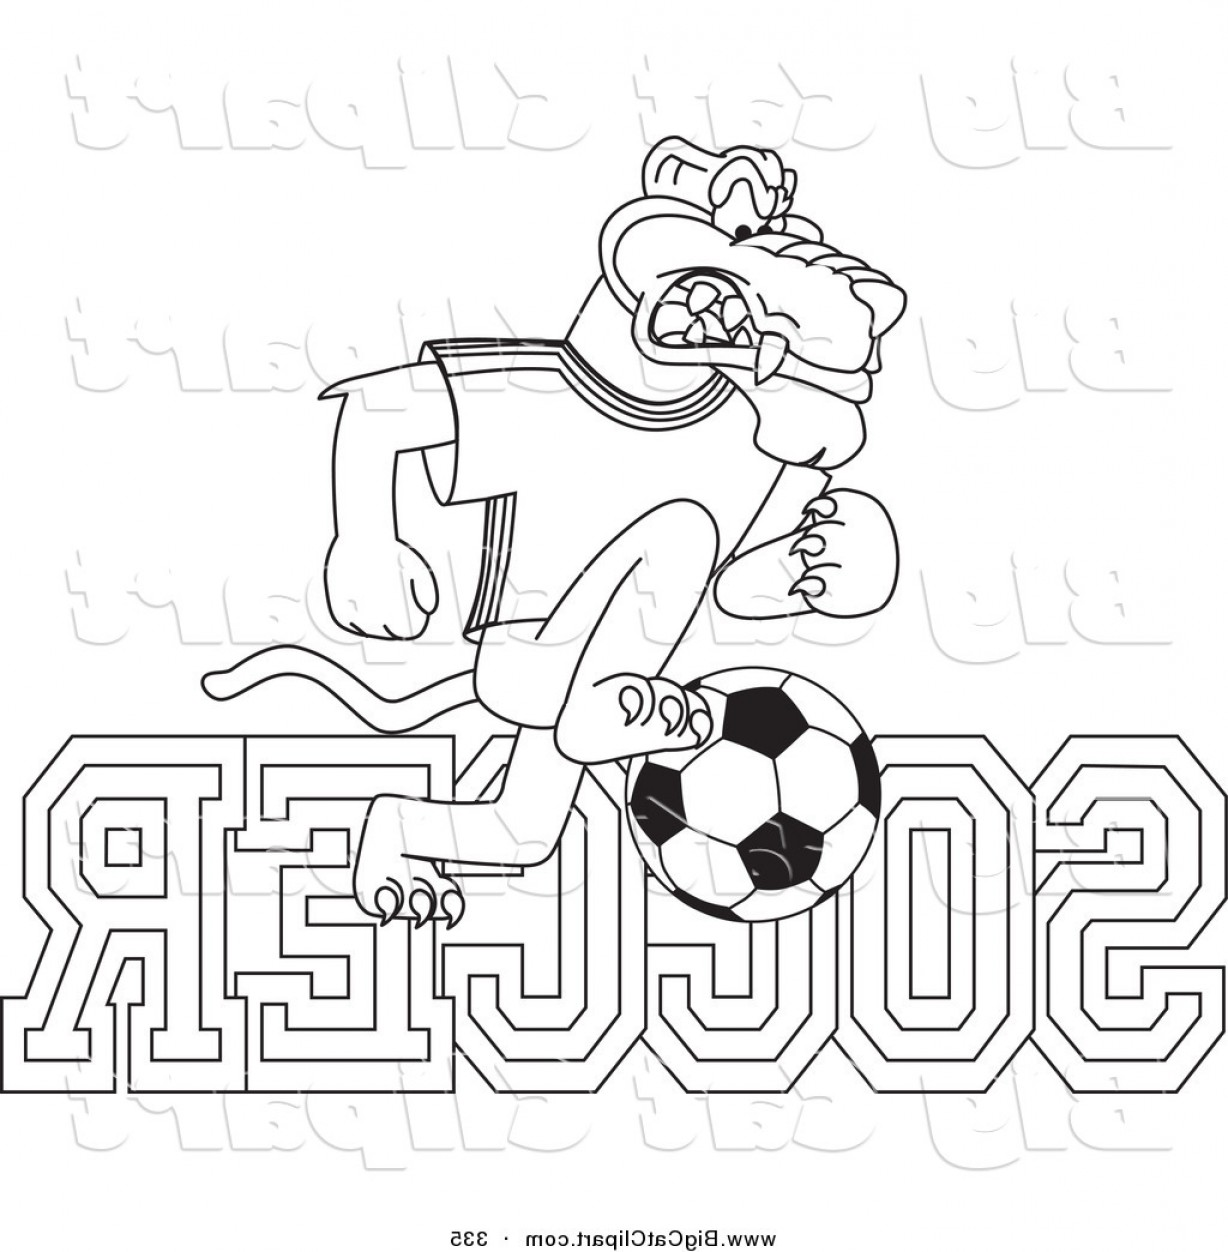 Panther Mascot Vector Sports: Big Cat Cartoon Vector Clipart Of A Coloring Page Outline Design Of A Panther Character Mascot With Soccer Text By Toonsbiz